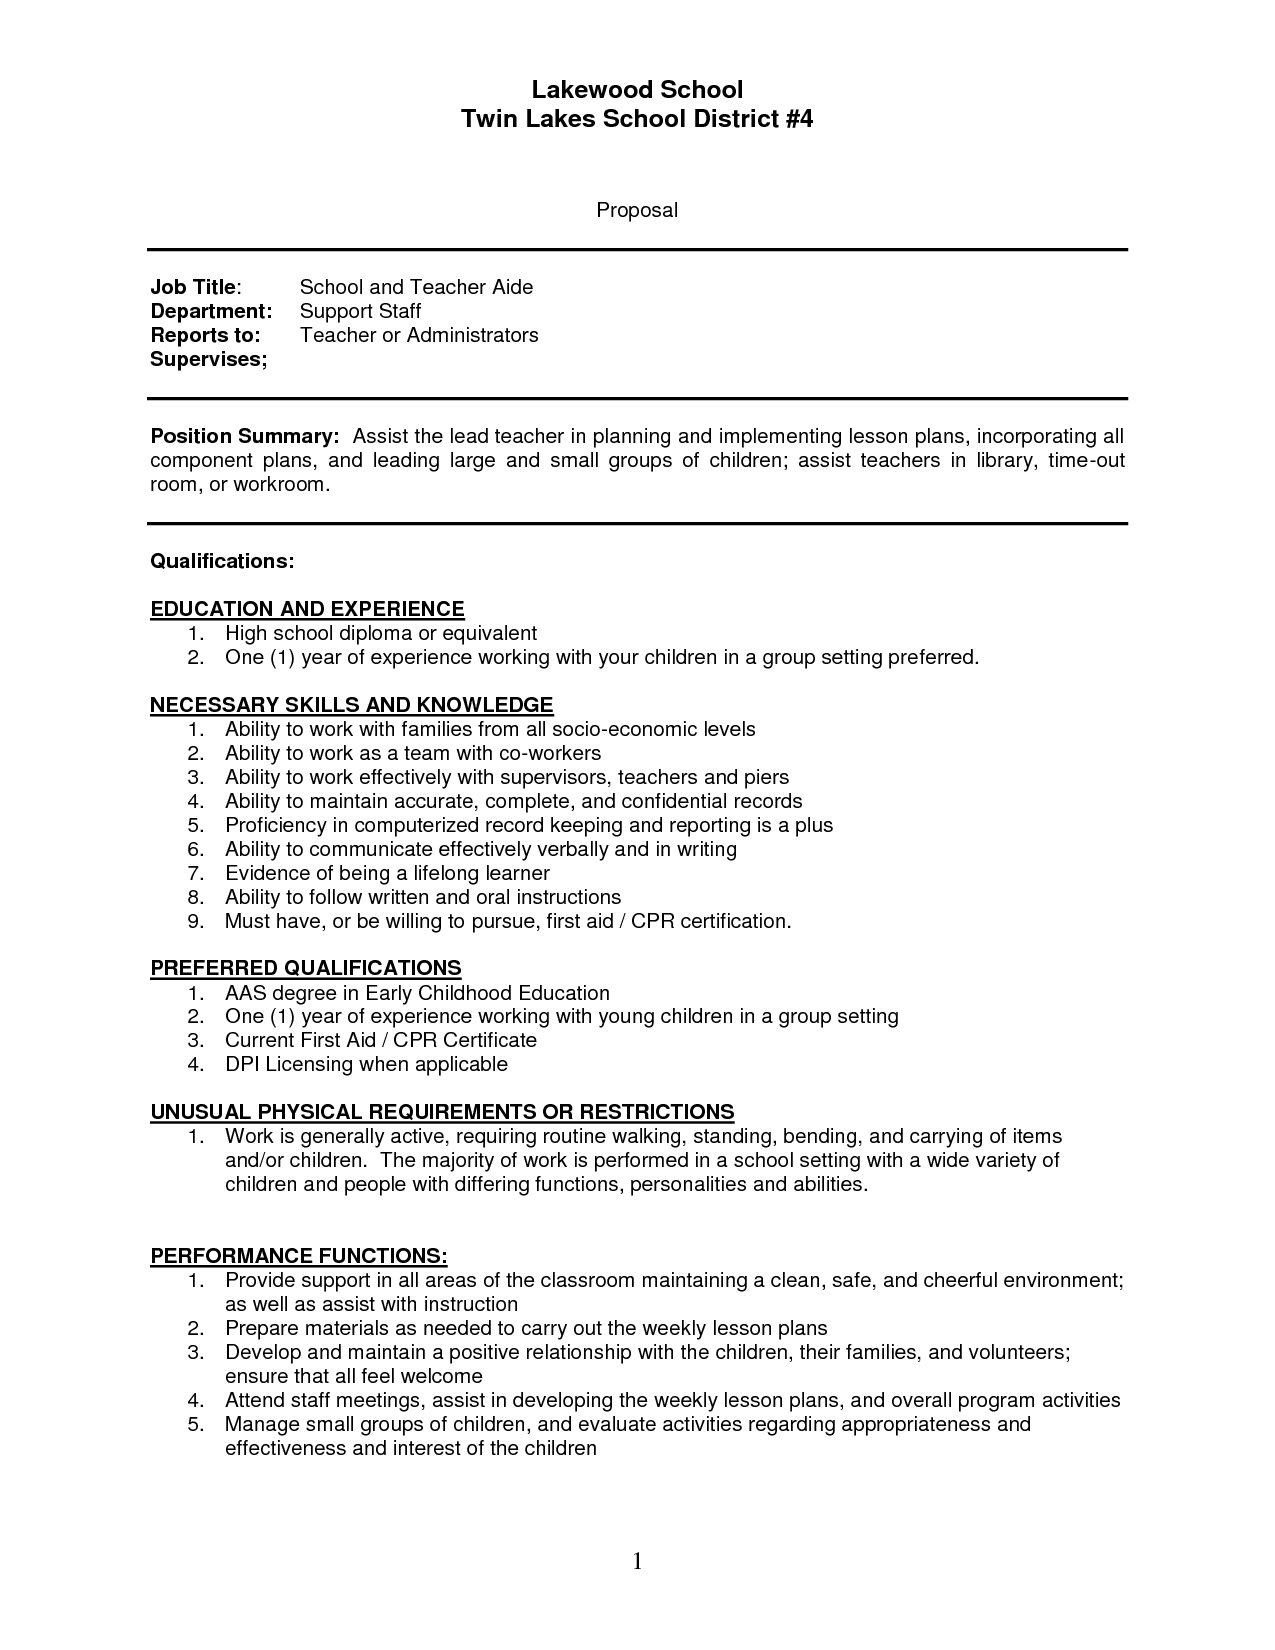 Resume Education Example Teacher Assistant Sample Resume Sample Resume Of Teachers